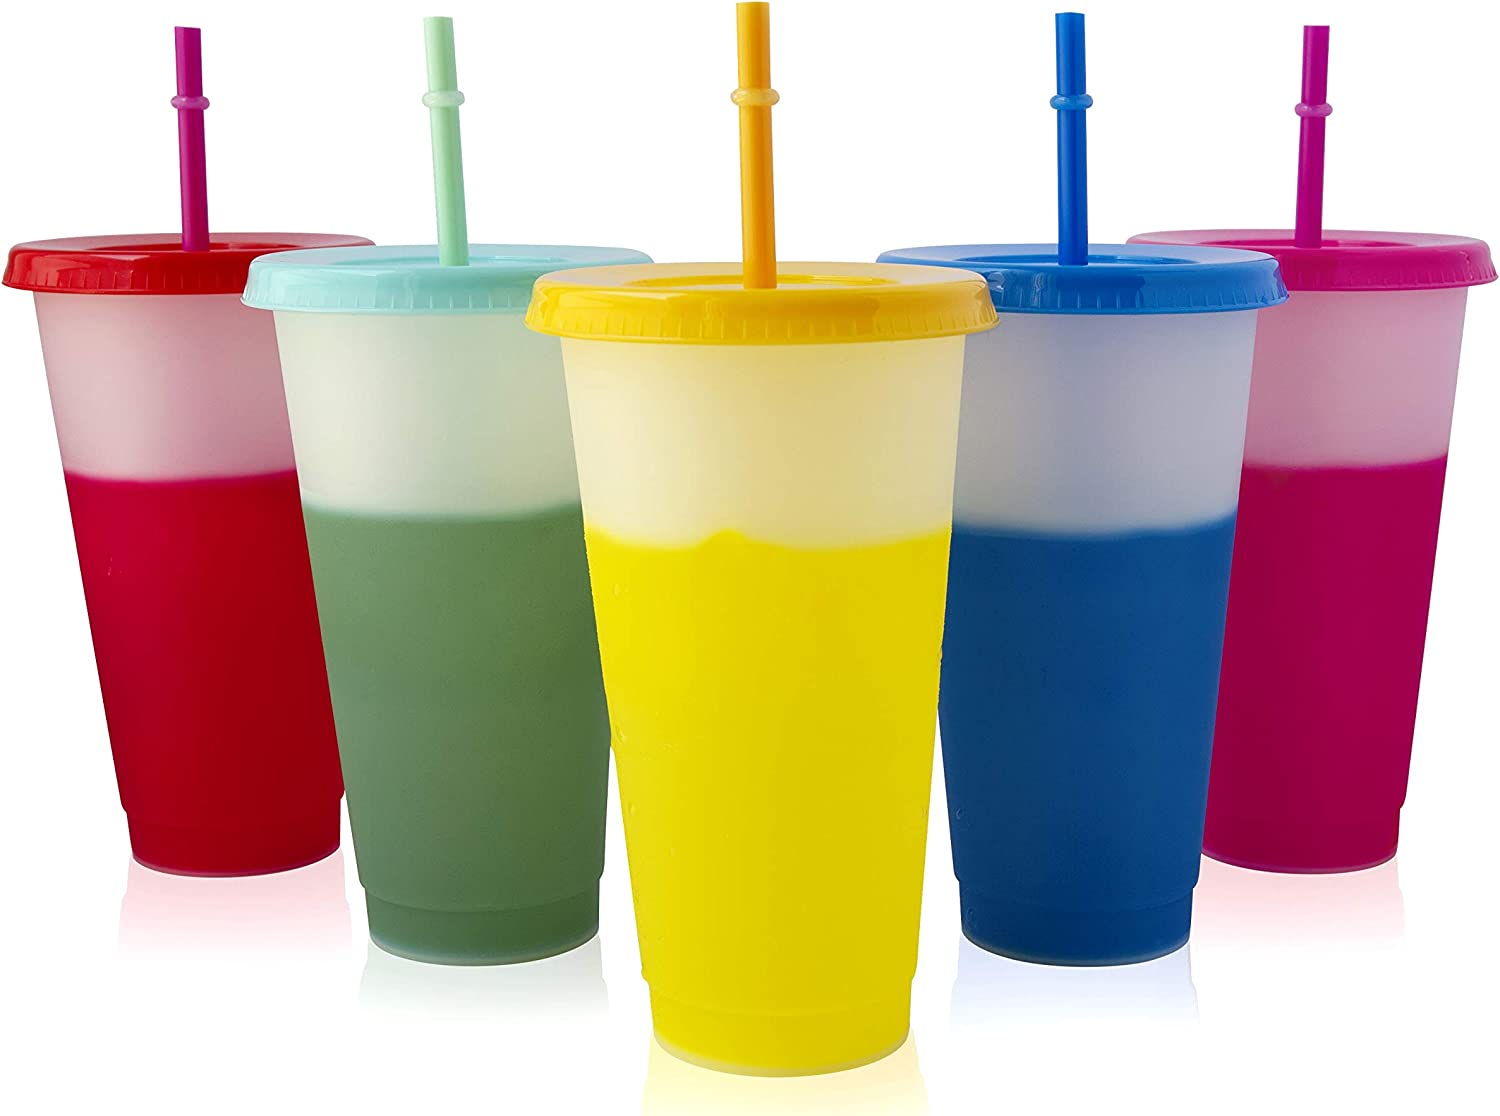 MagiCup Color Changing Cups - Set of 5 Frosted Plastic Cups with Lids and Straws - BPA Free - 24oz Reusable Tumblers - Blank Cold Drink Cup - Party Cups for Adults and Kids